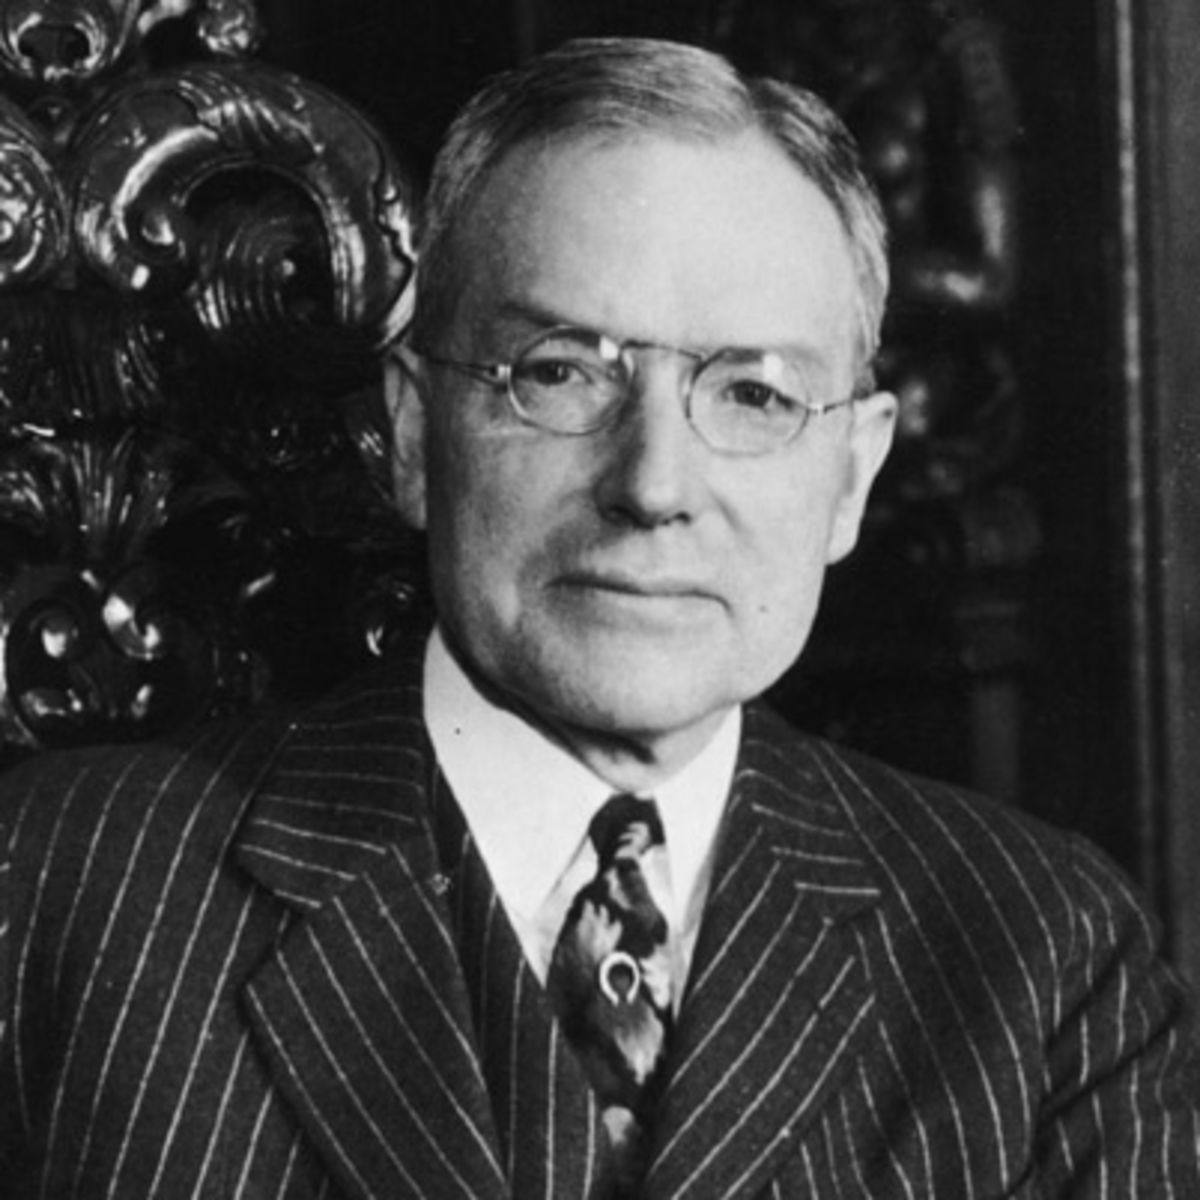 learn more about the philanthropy of heir john d rockefeller jr learn more about the philanthropy of heir john d rockefeller jr who built